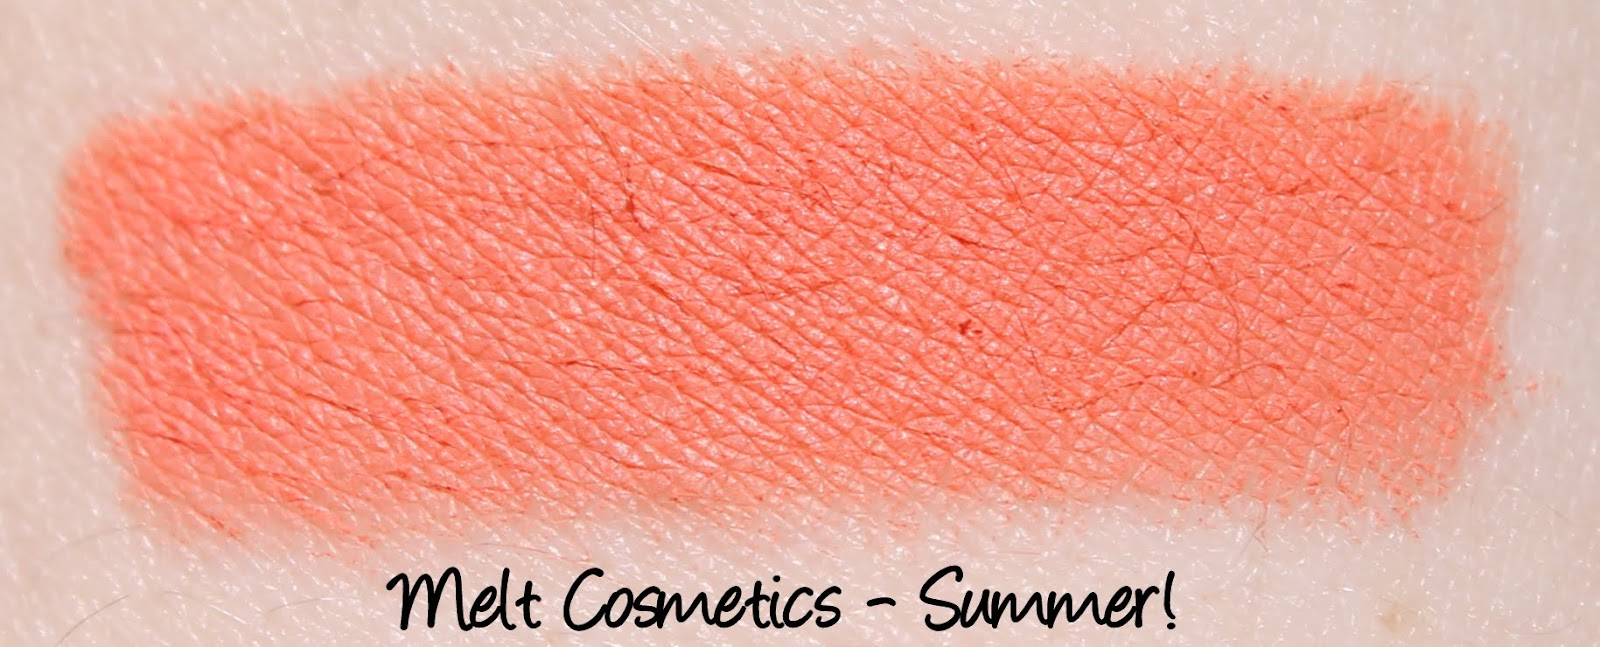 Melt Cosmetics - Summer! Lipstick Swatches & Review